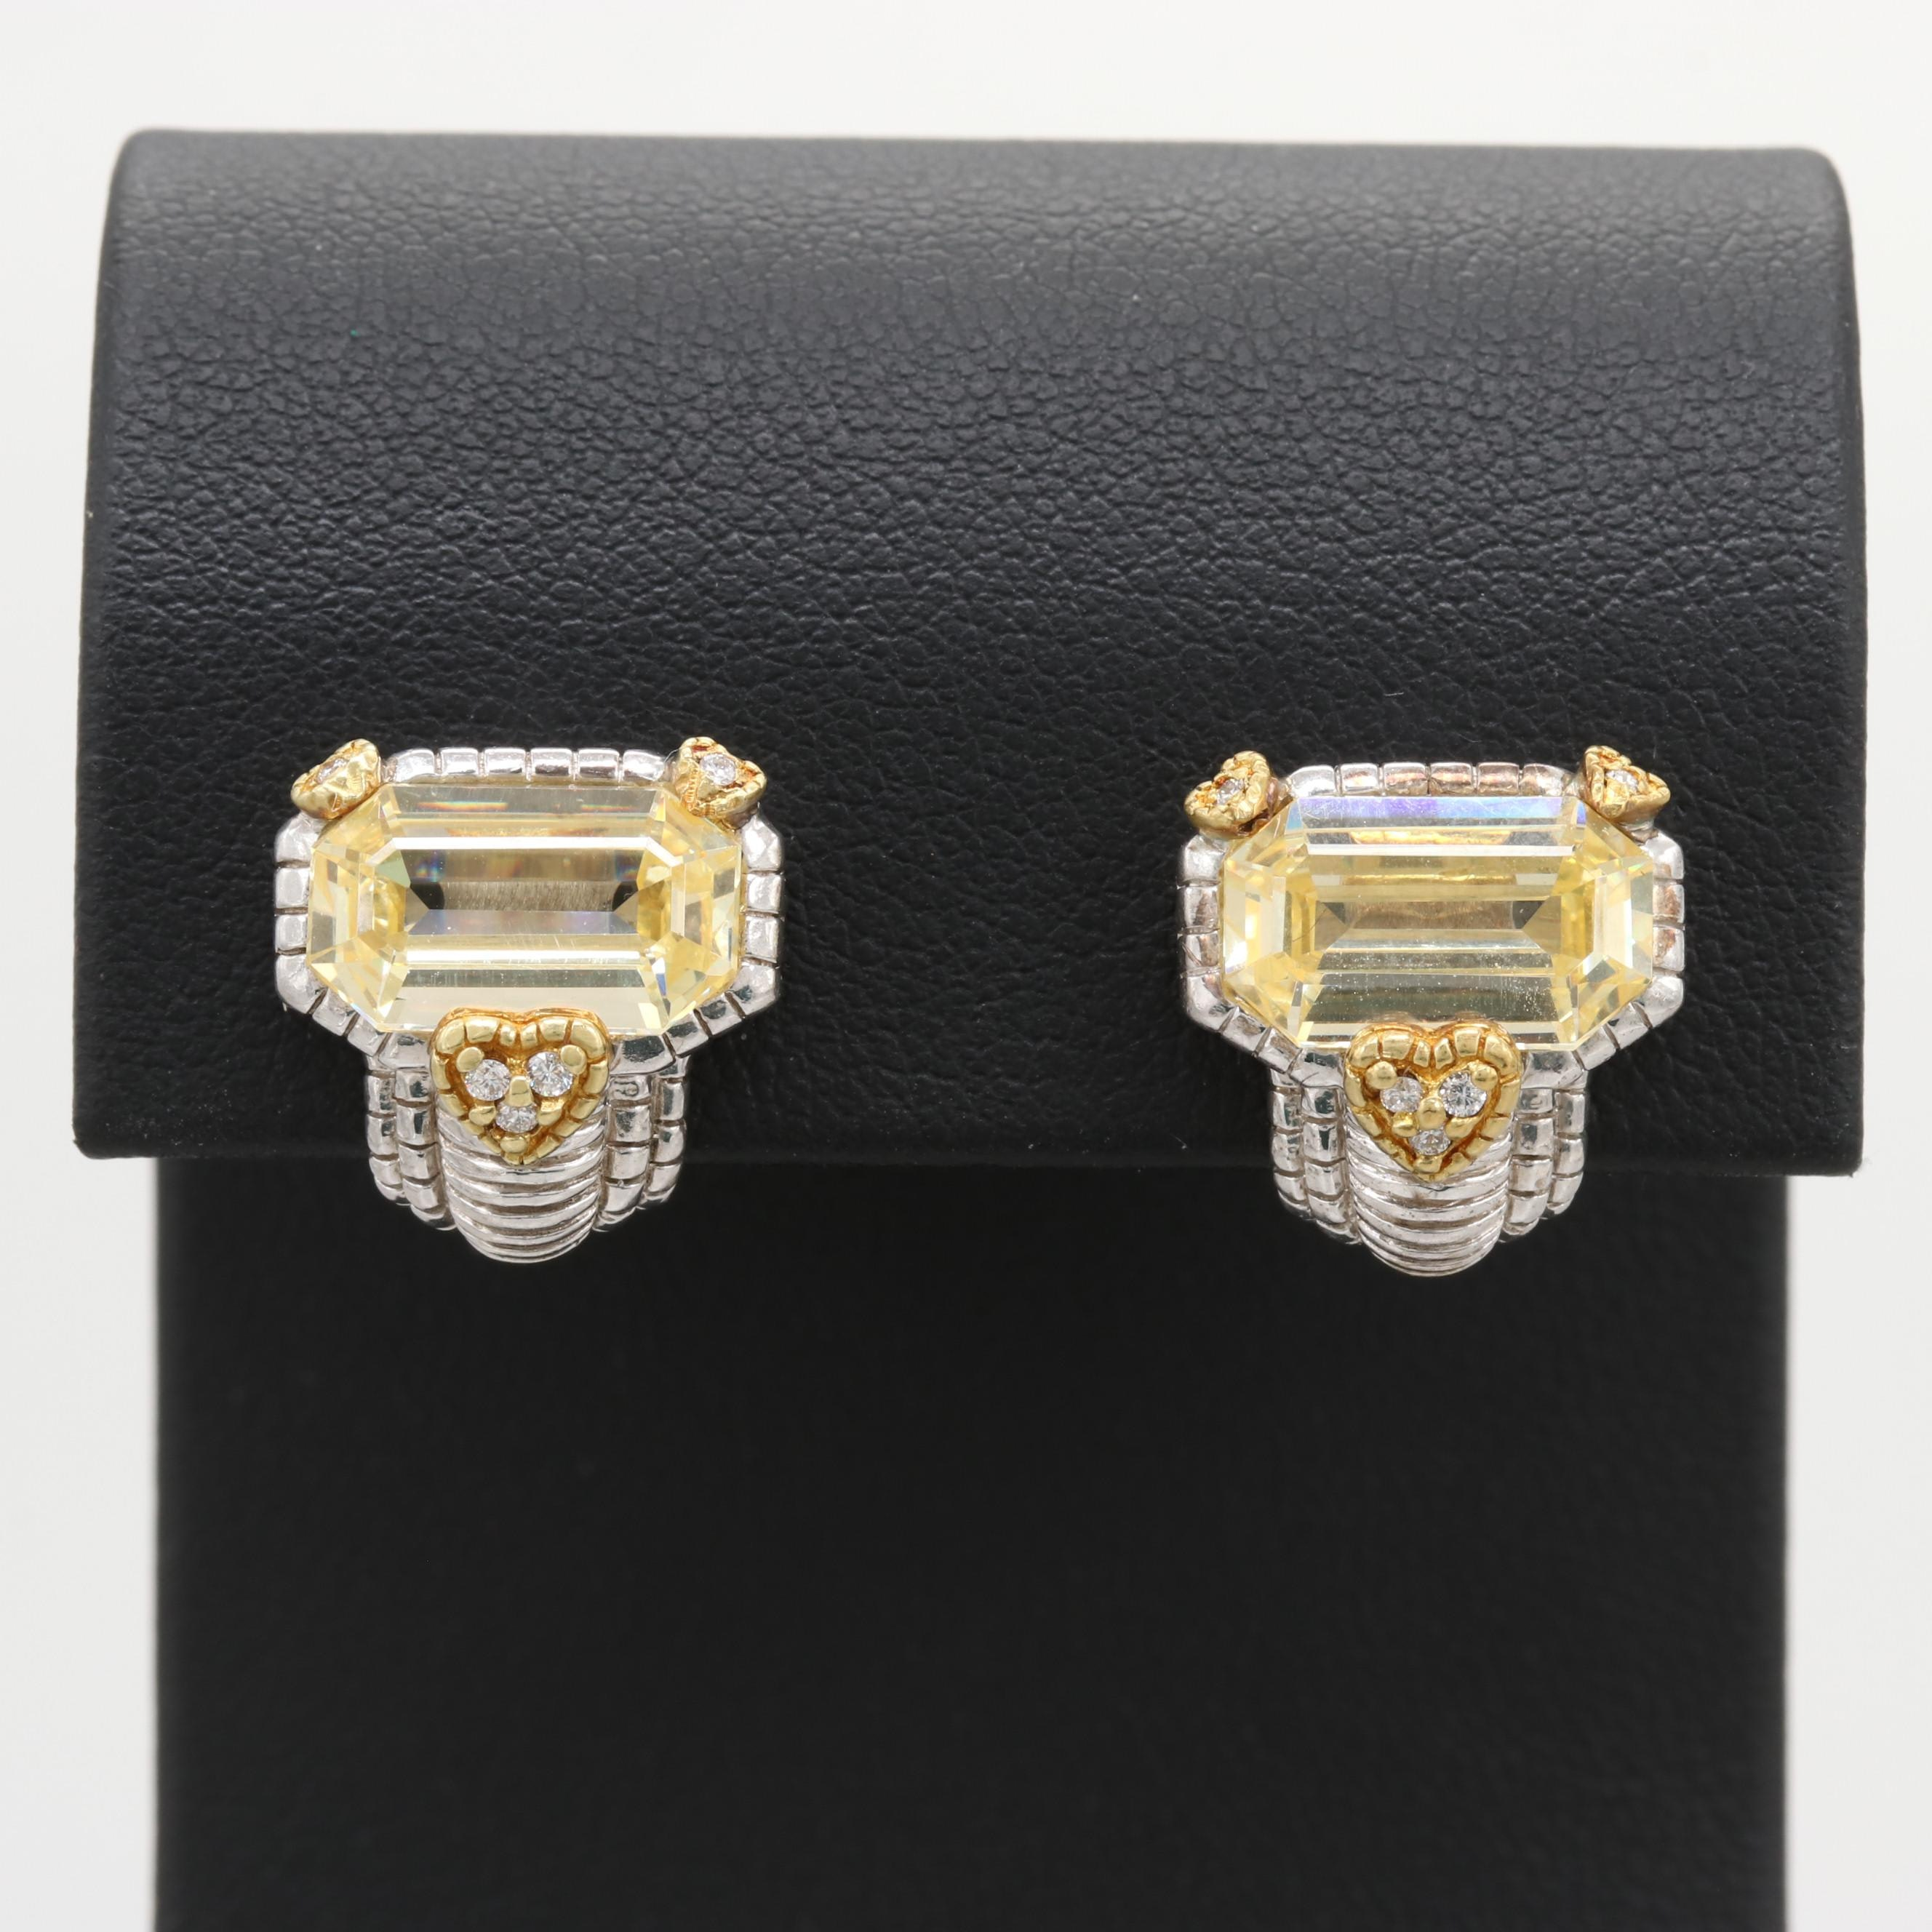 Judith Ripka Sterling Diamond and Cubic Zirconia Earrings with 18K Gold Accents